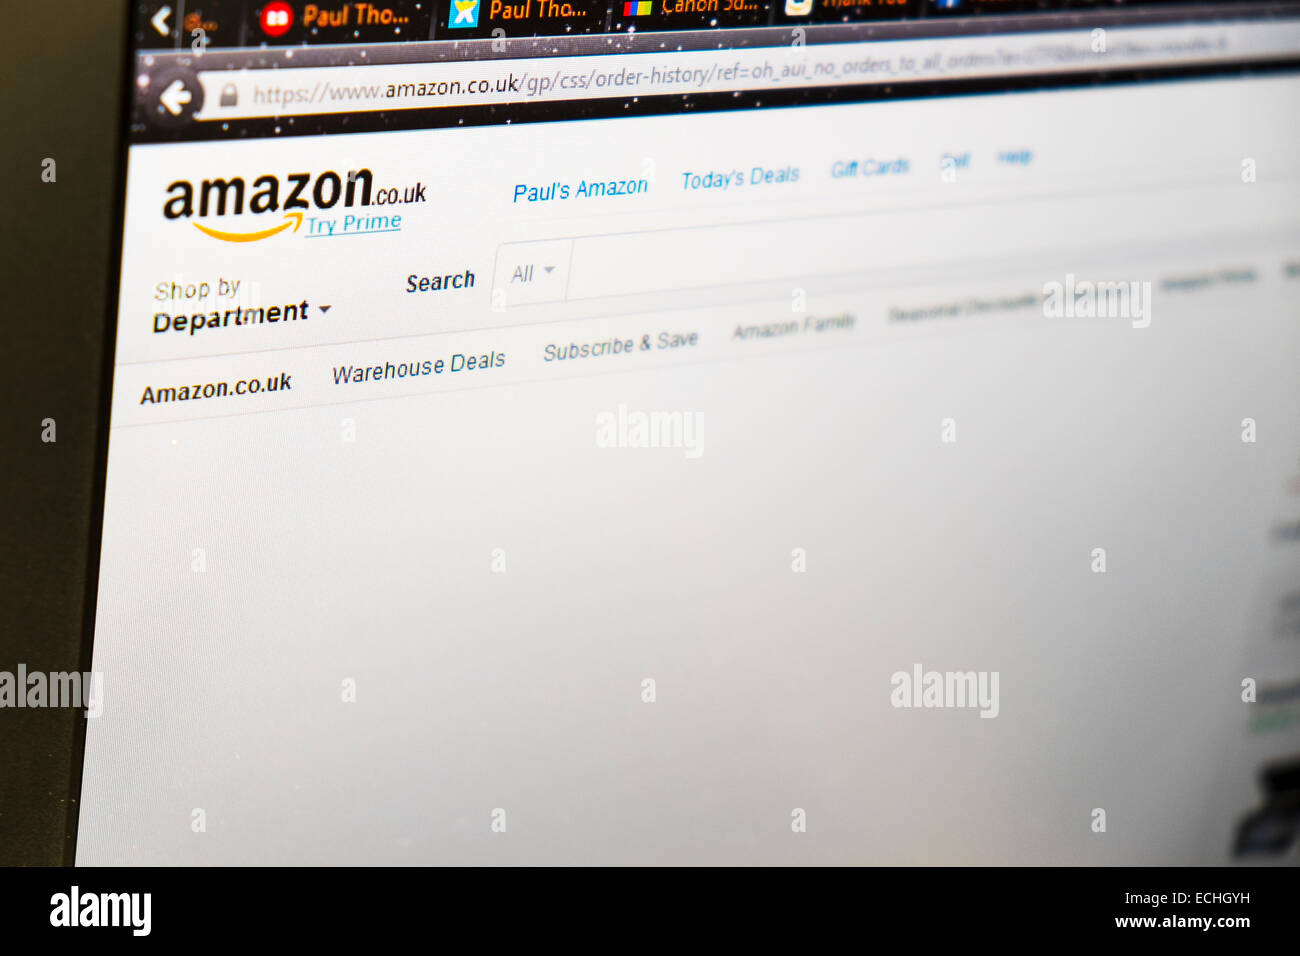 Amazon uk website search box online web searching department internet computer screen - Stock Image